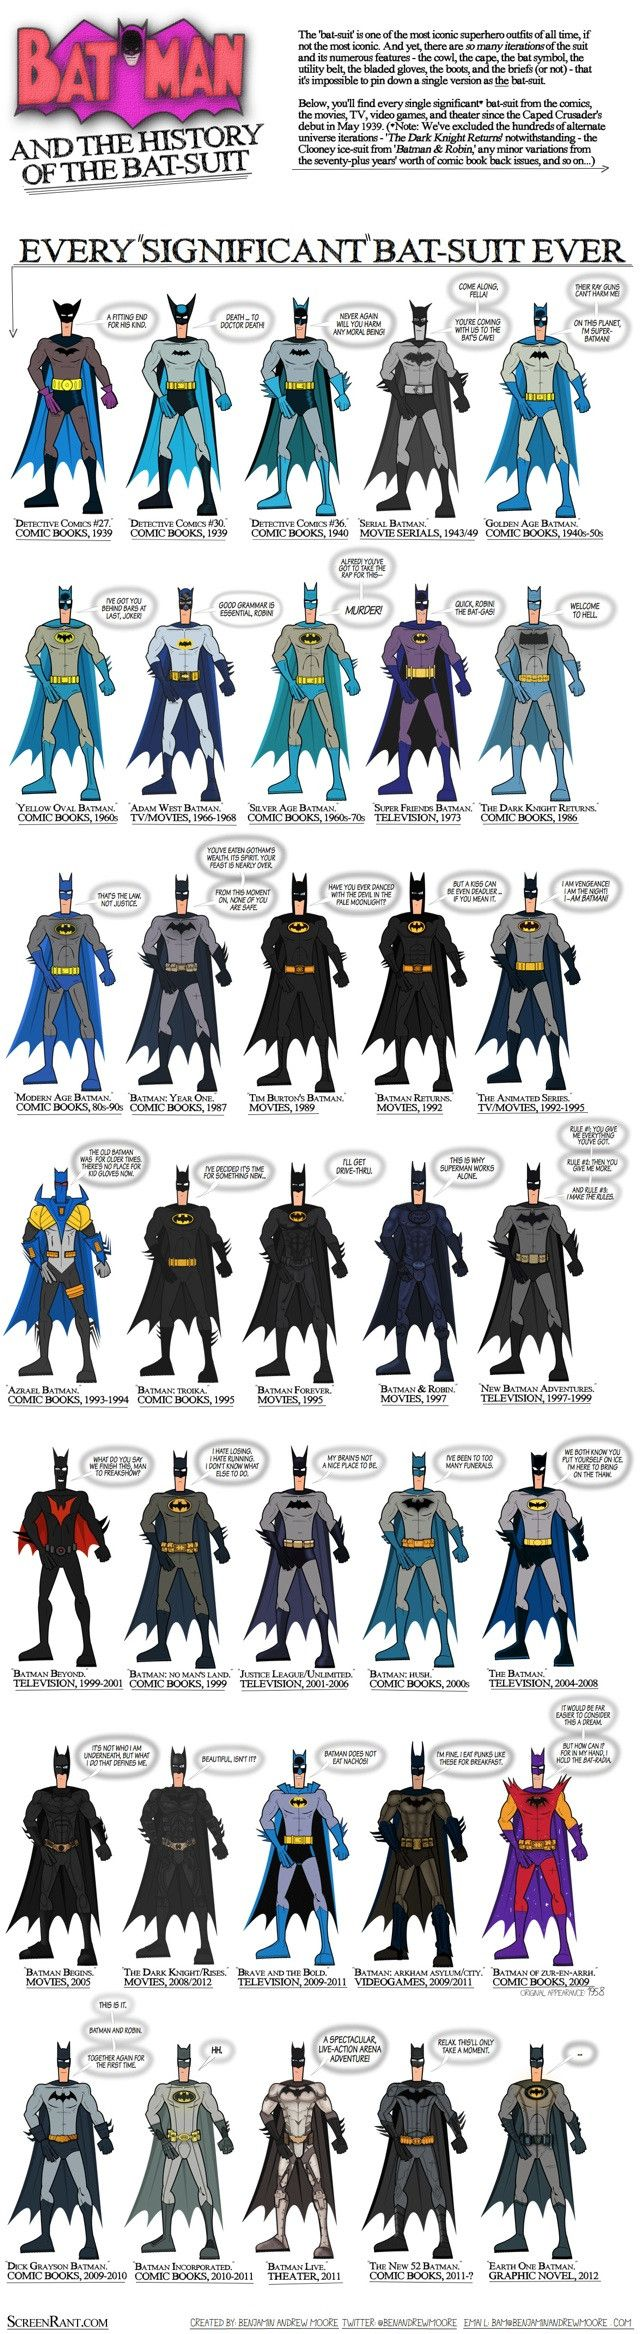 How well do you know your Batmans? For sure, comic book enthusiasts are already spewing out facts and trivia showcasing their knowledge. And of course, the bat-suit will be mentioned in there more than once. I honestly wouldn't be able to say much on this topic, but lucky for people like me, Ben Moore of Screen Rant1 has created an infographic detailing every single significant bat-suit that has existed.